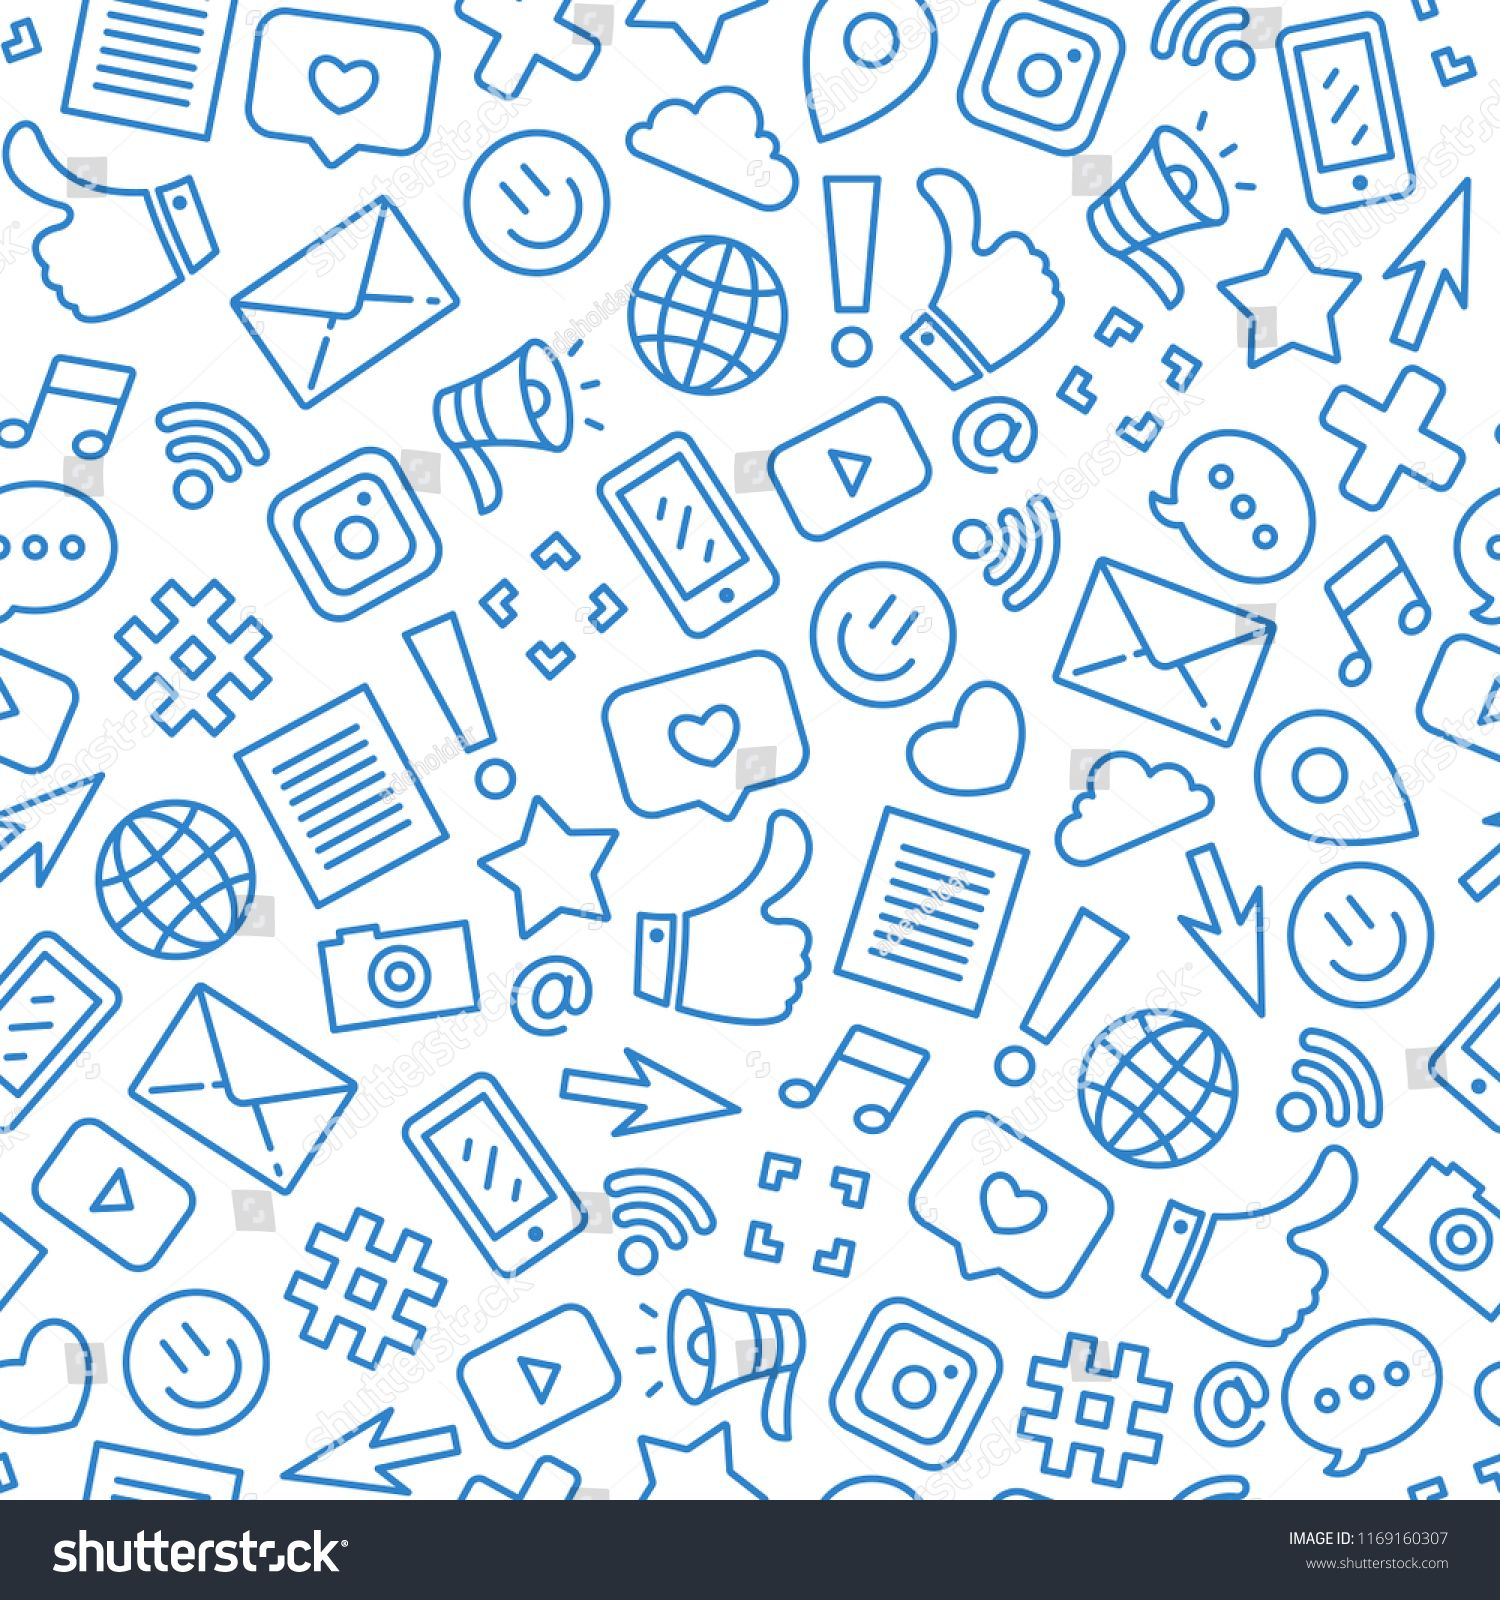 Social Media Minimalist Seamless Pattern Internet Messenger Background Vector Illustration Seamless Seamless Patterns Web Design Tutorials Stock Images Free